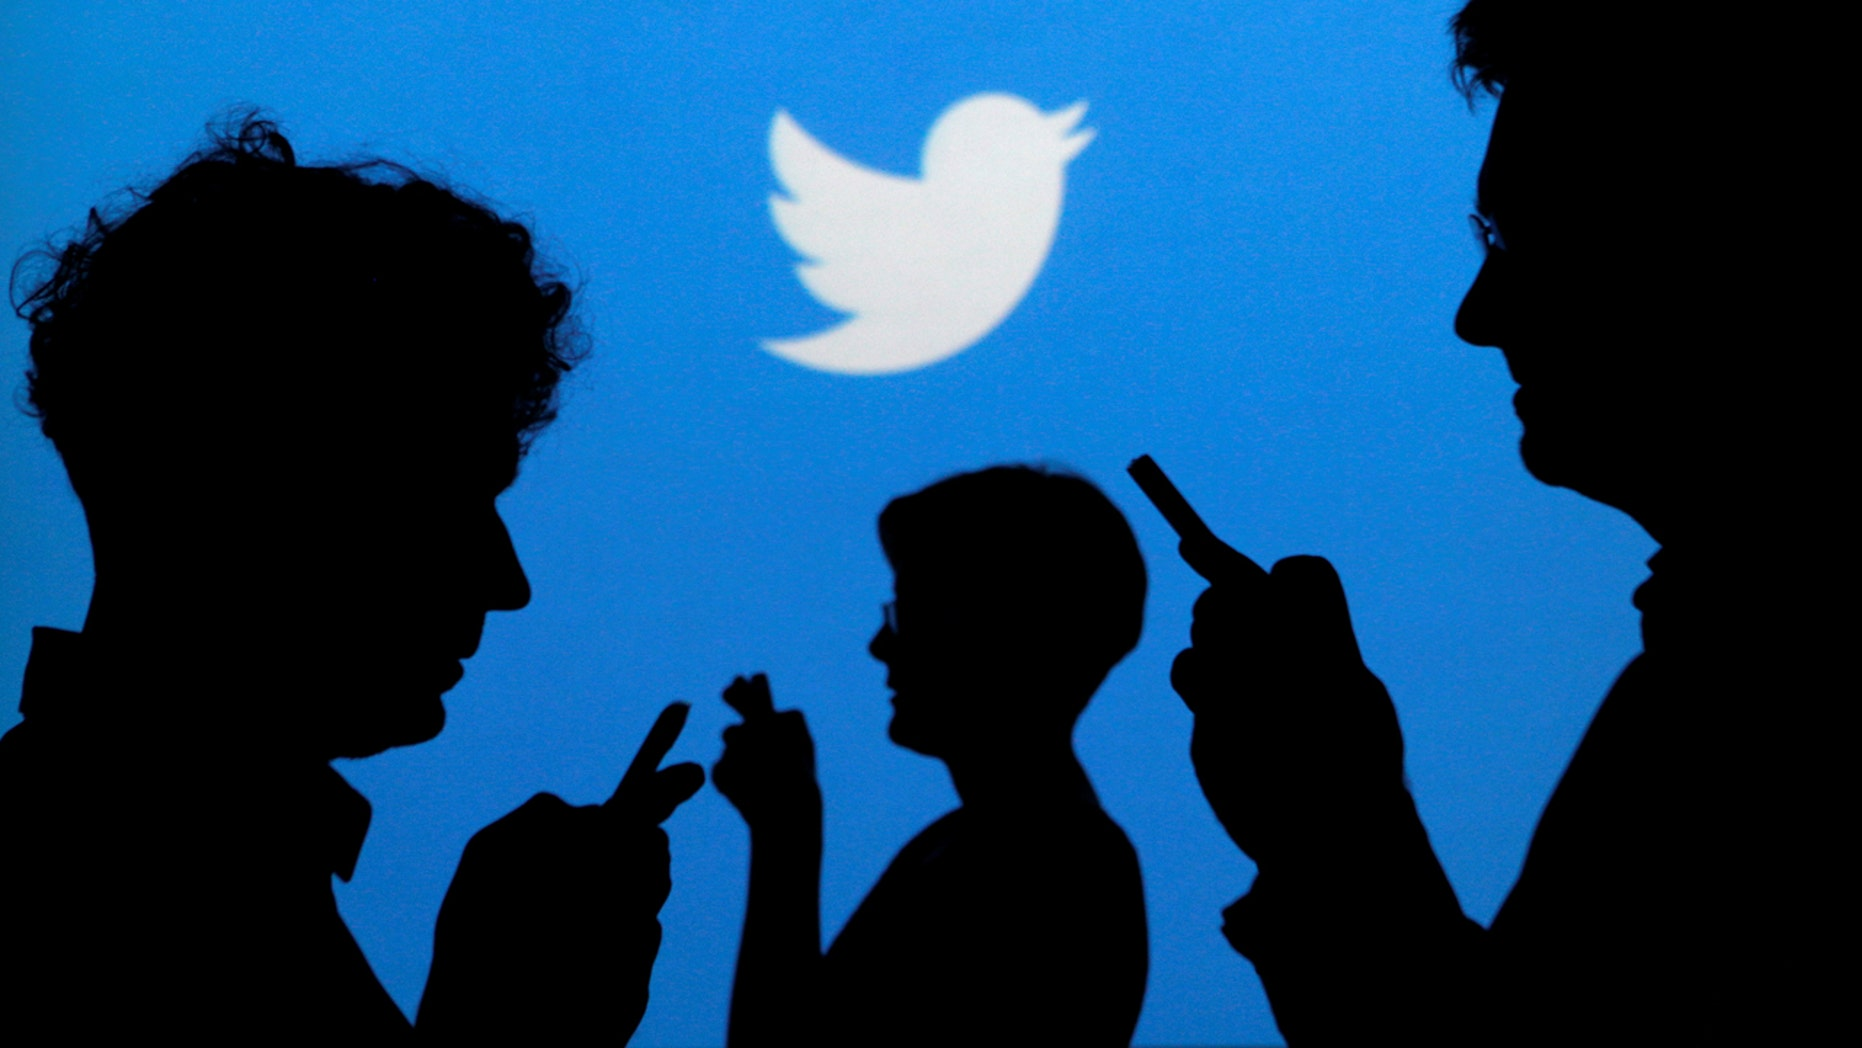 People holding mobile phones are silhouetted against a backdrop projected with the Twitter logo.